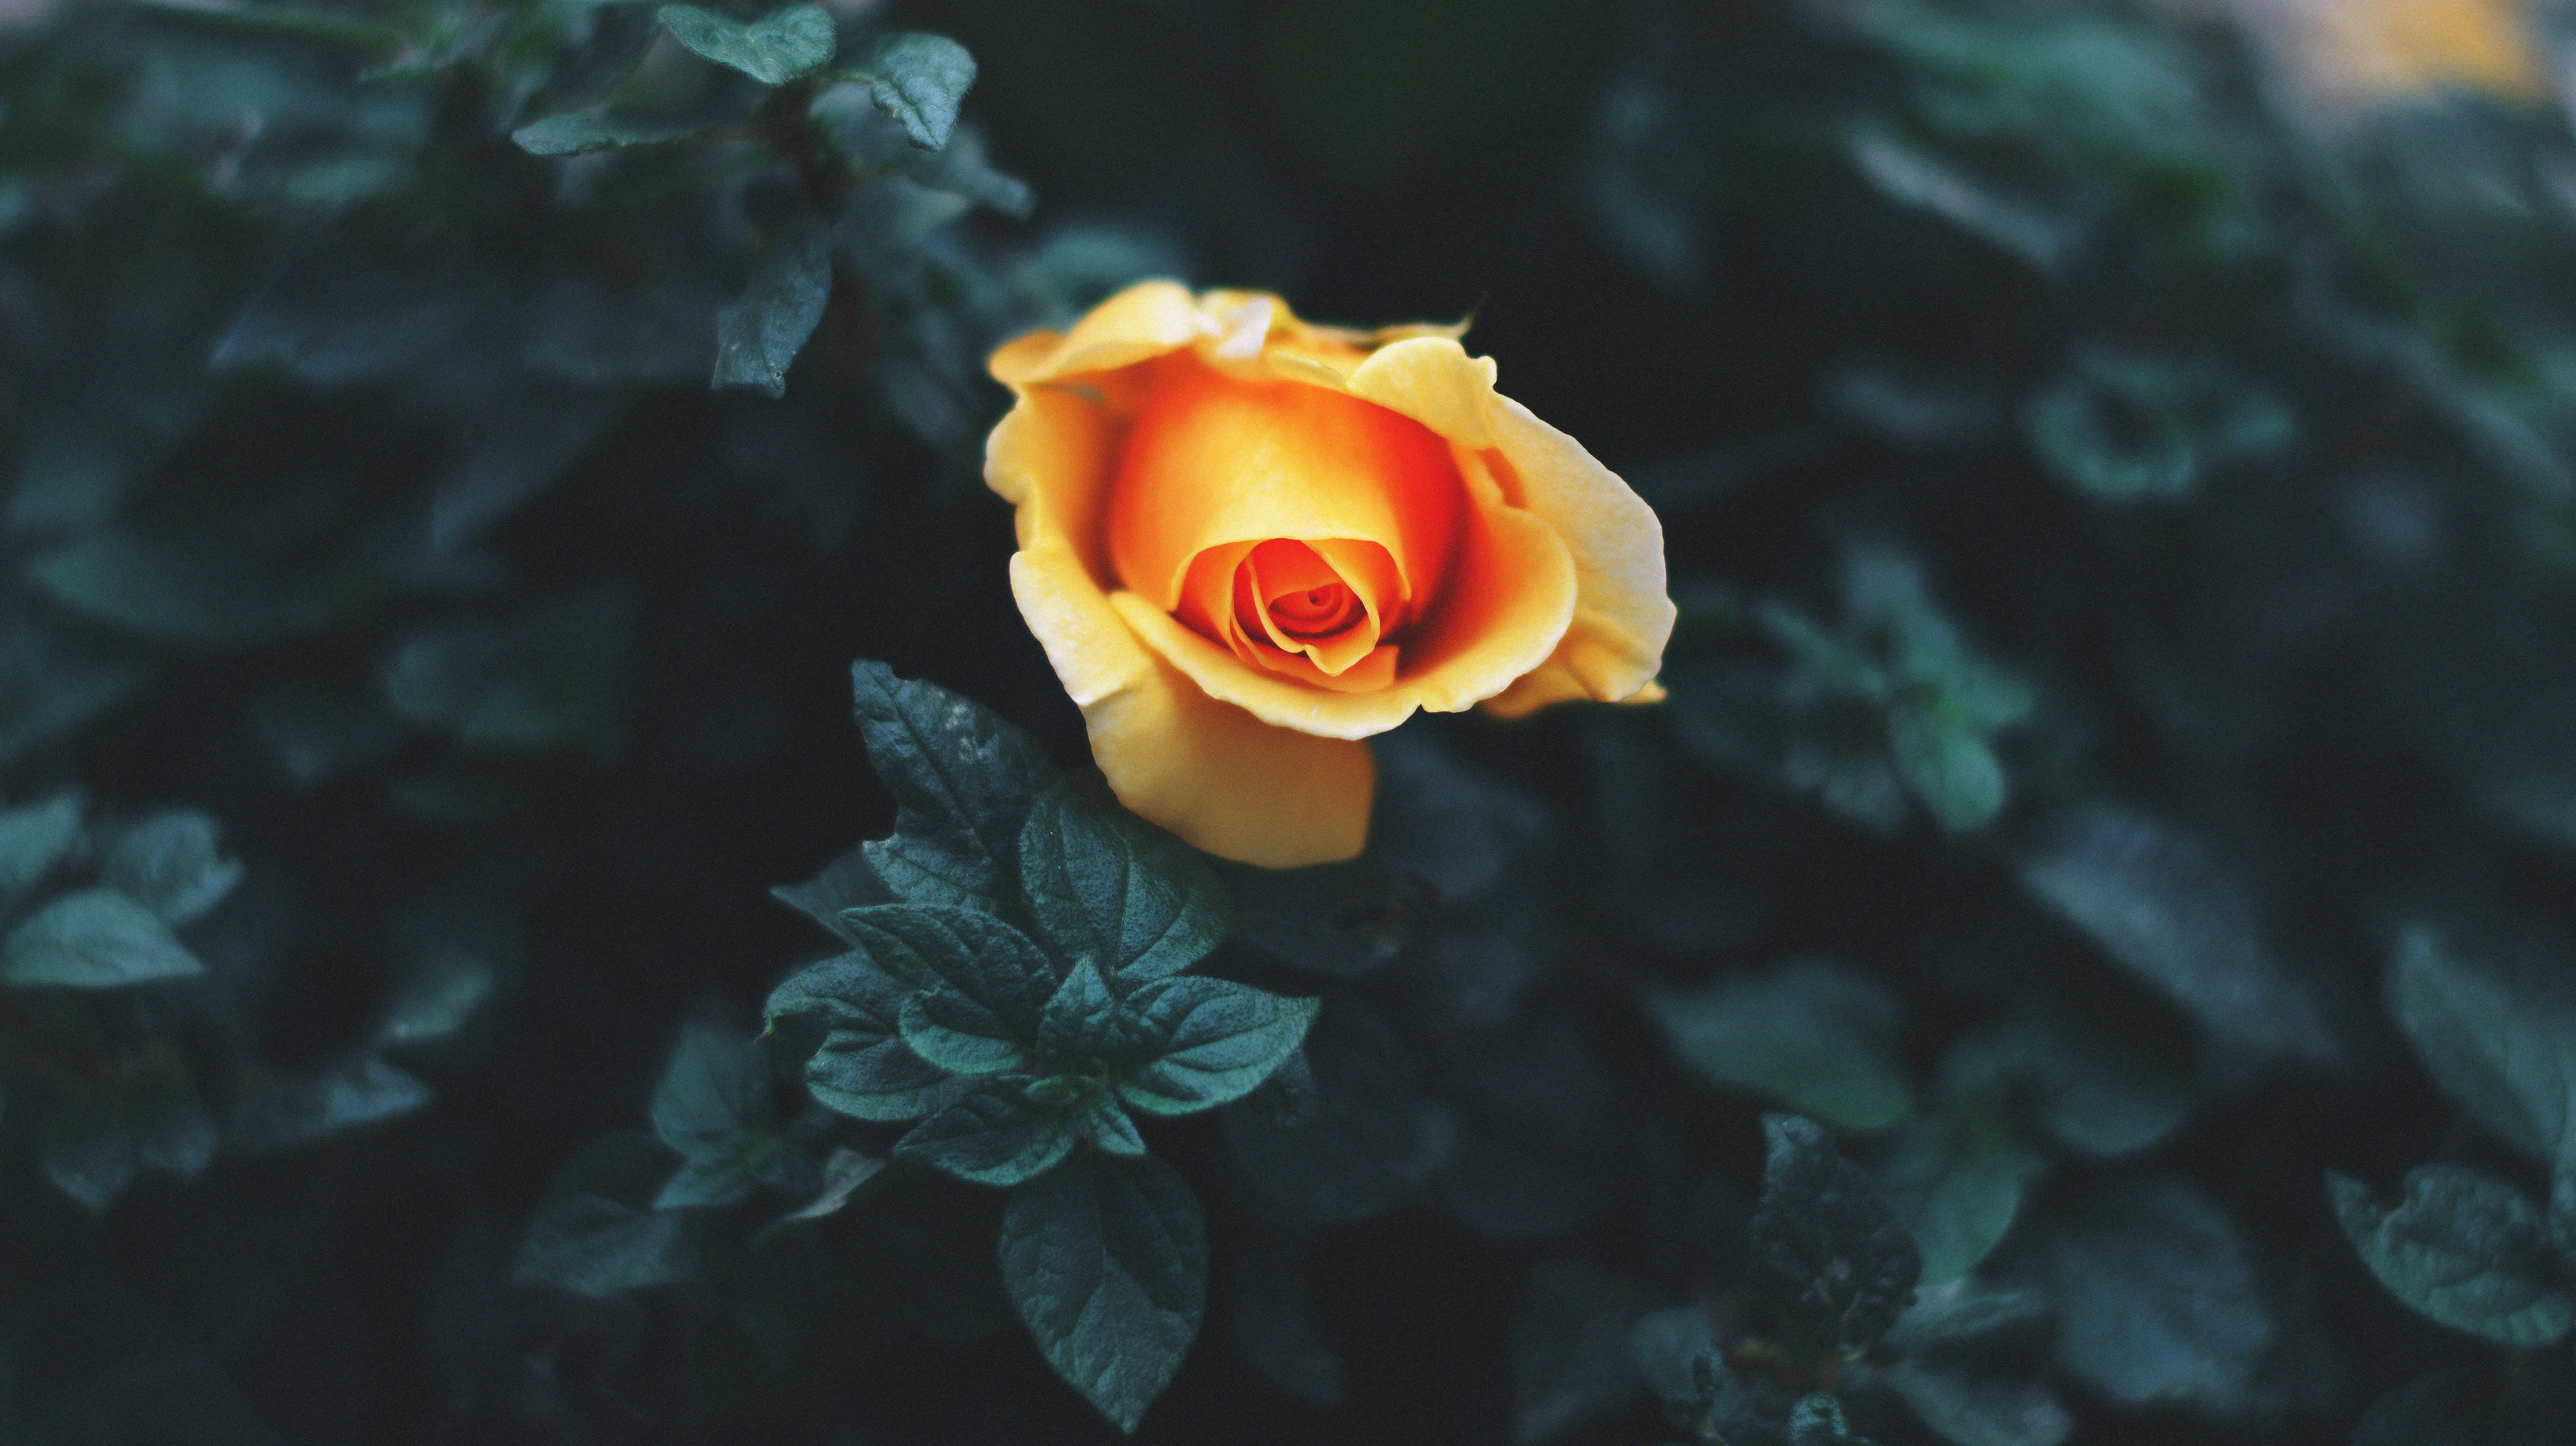 An orange rose-like flower among dark green leaves